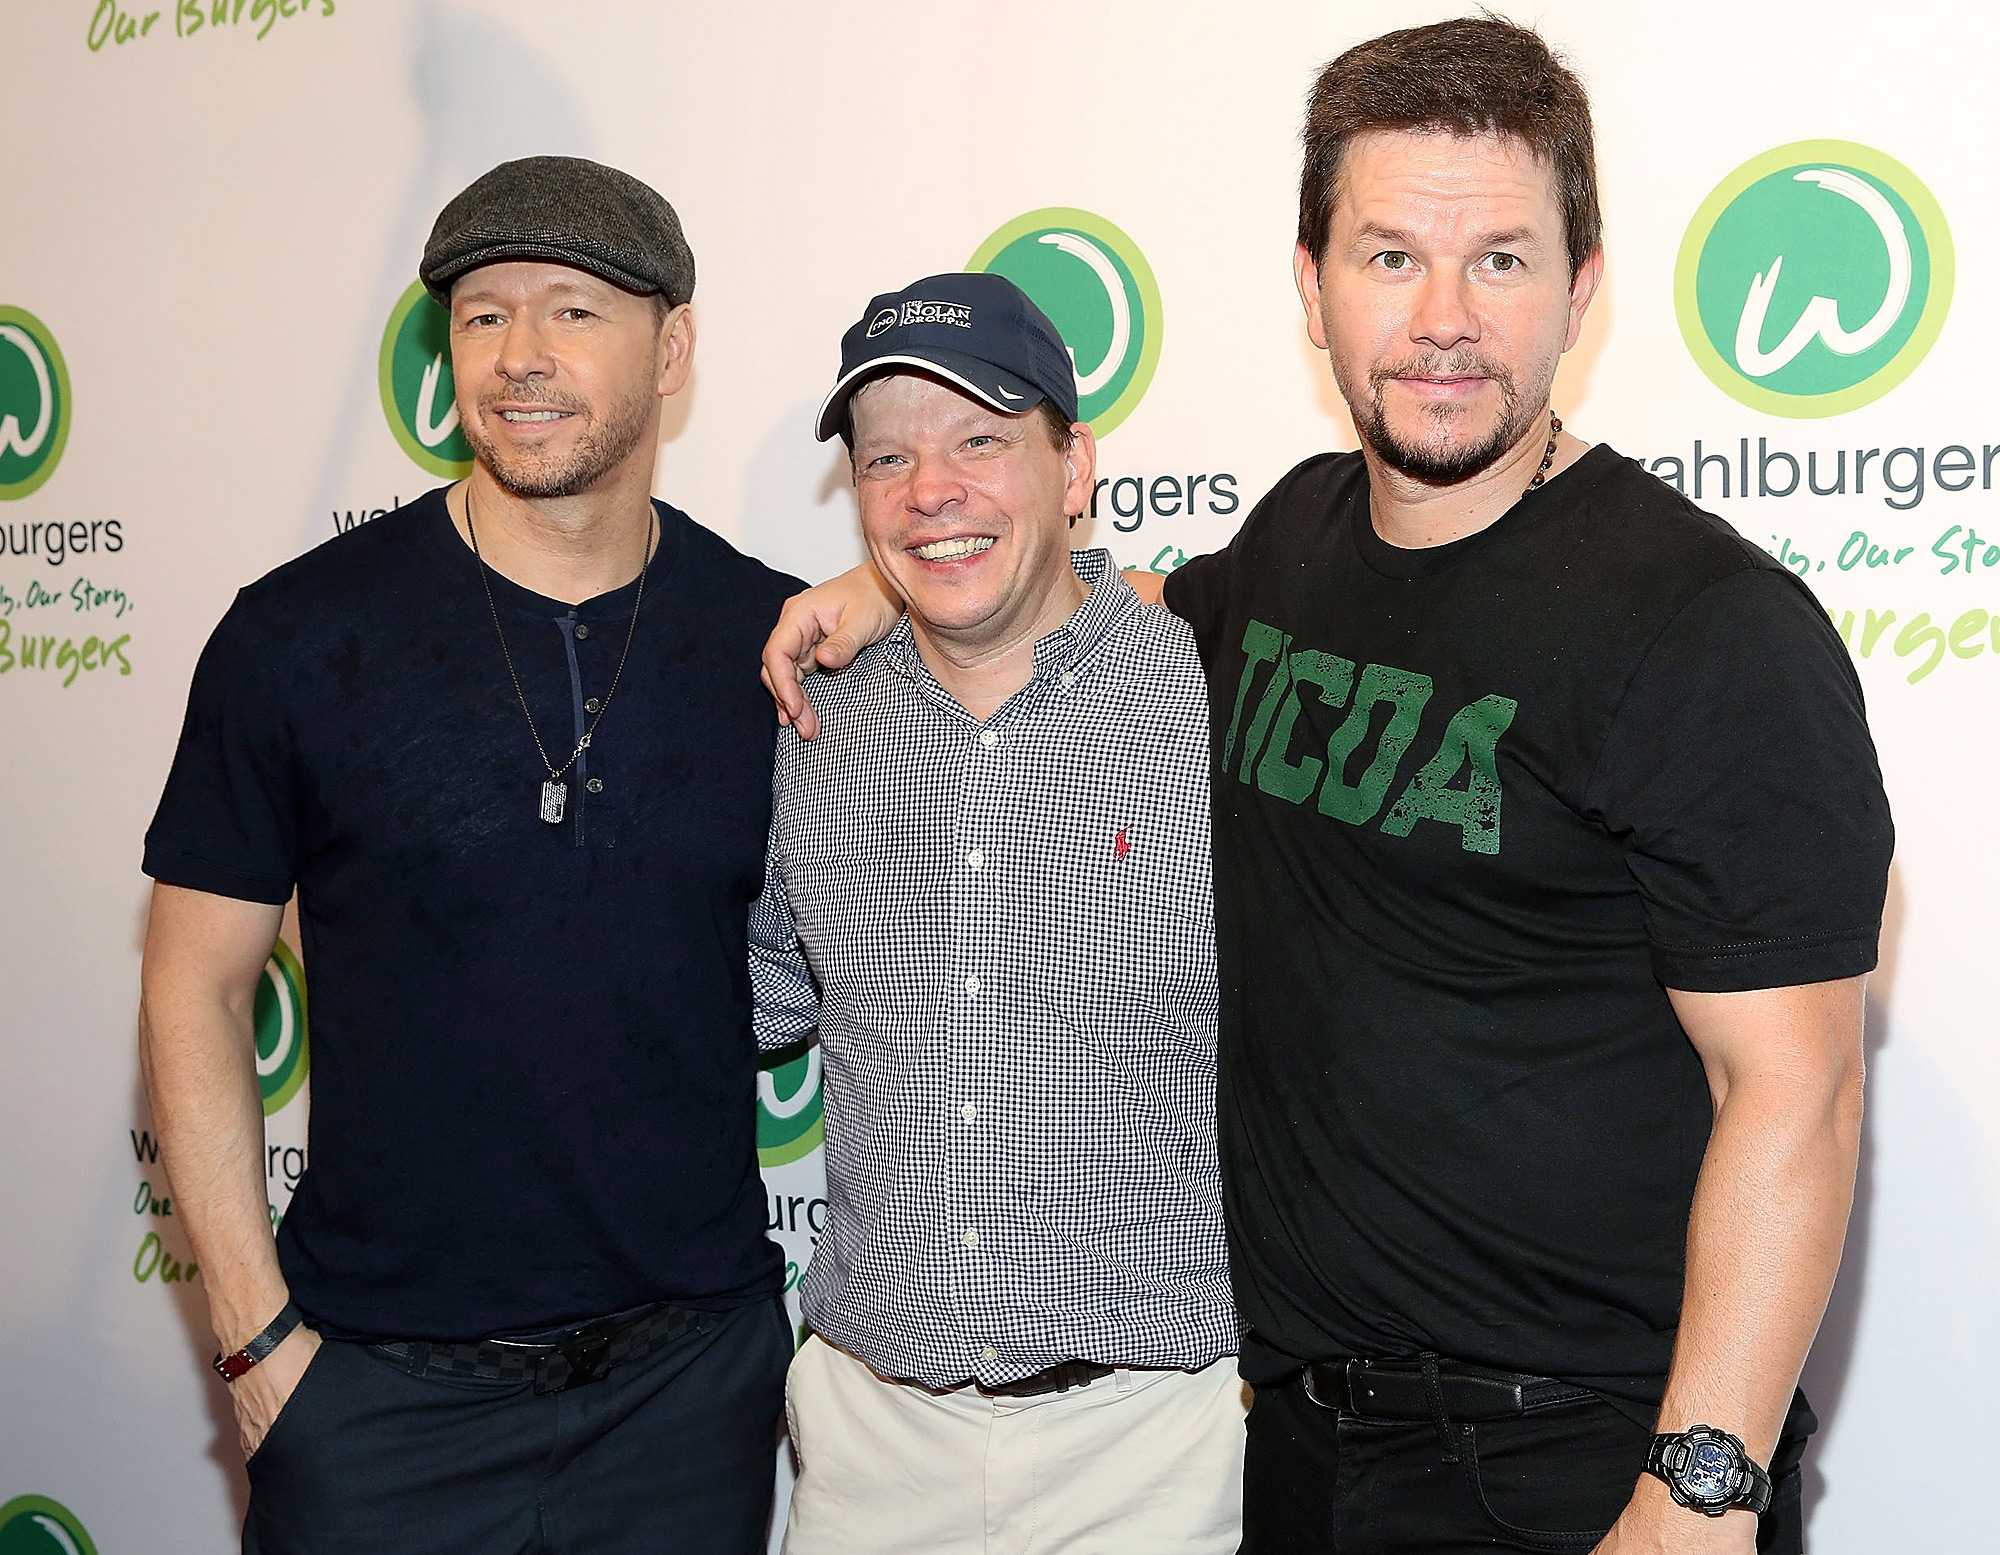 NEW YORK, NY - JUNE 23: (L-R) Donnie Wahlberg, Paul Wahlberg and Mark Wahlberg attend the Wahlburgers Coney Island VIP Preview Party at Wahlburgers Coney Island on June 23, 2015 in New York City. (Photo by Mireya Acierto/FilmMagic)